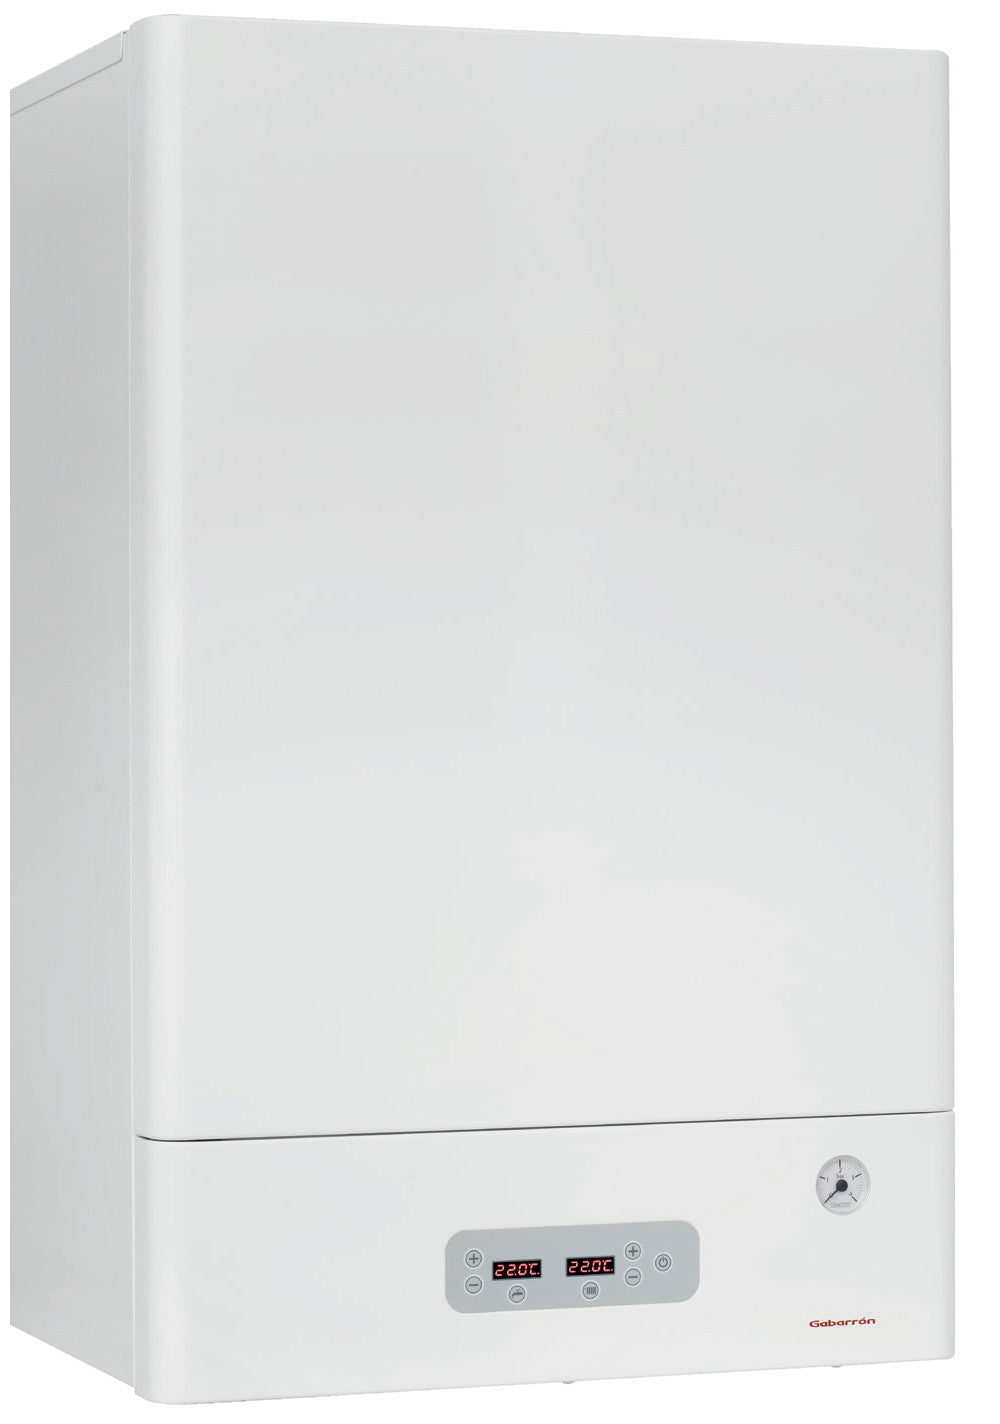 Elnur MAC15 Electric combi boiler